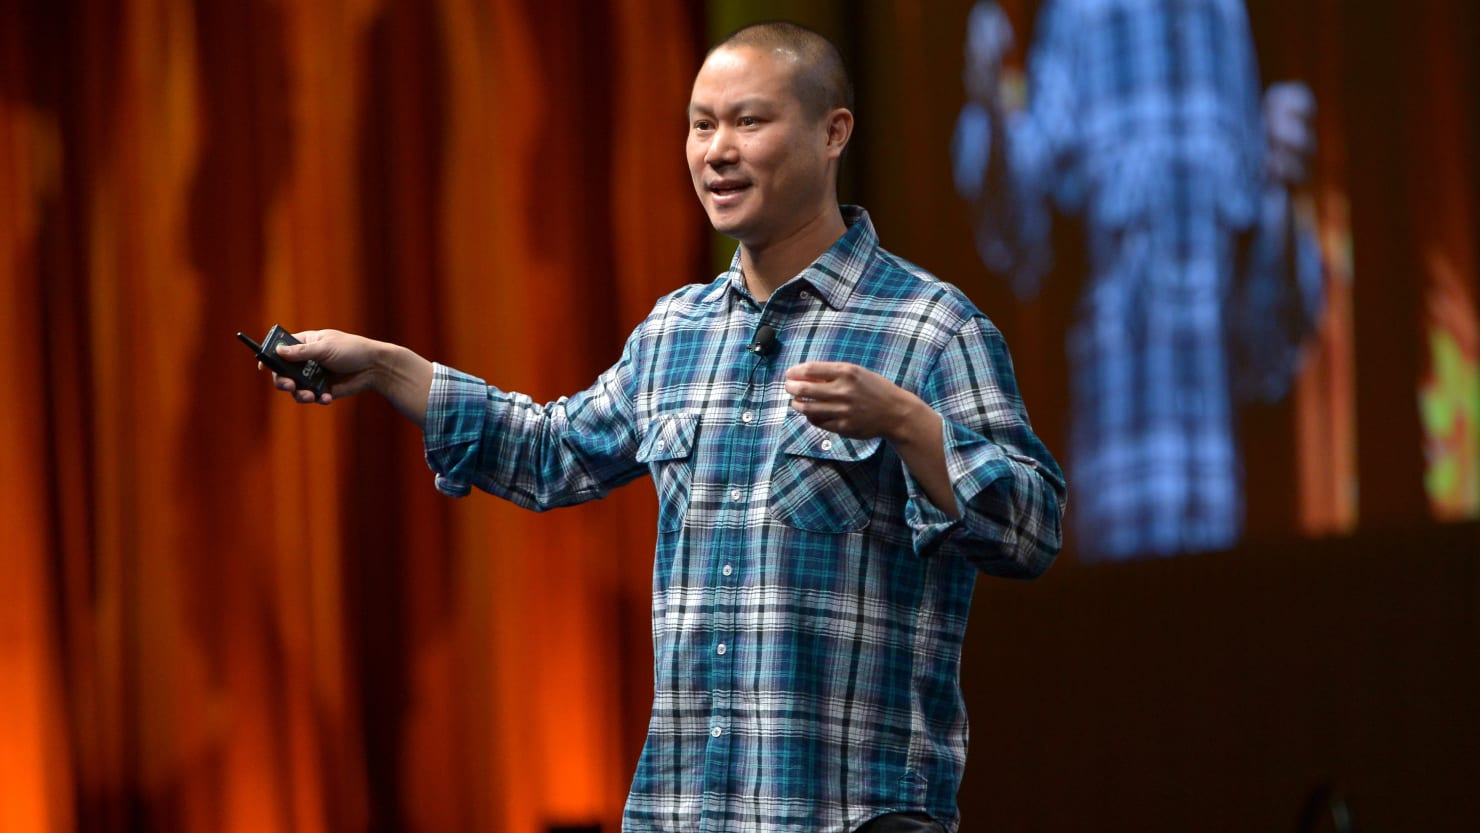 Tony Hsieh Developed Fire Obsession, Tried Starving Himself of Oxygen in Final Months: WSJ